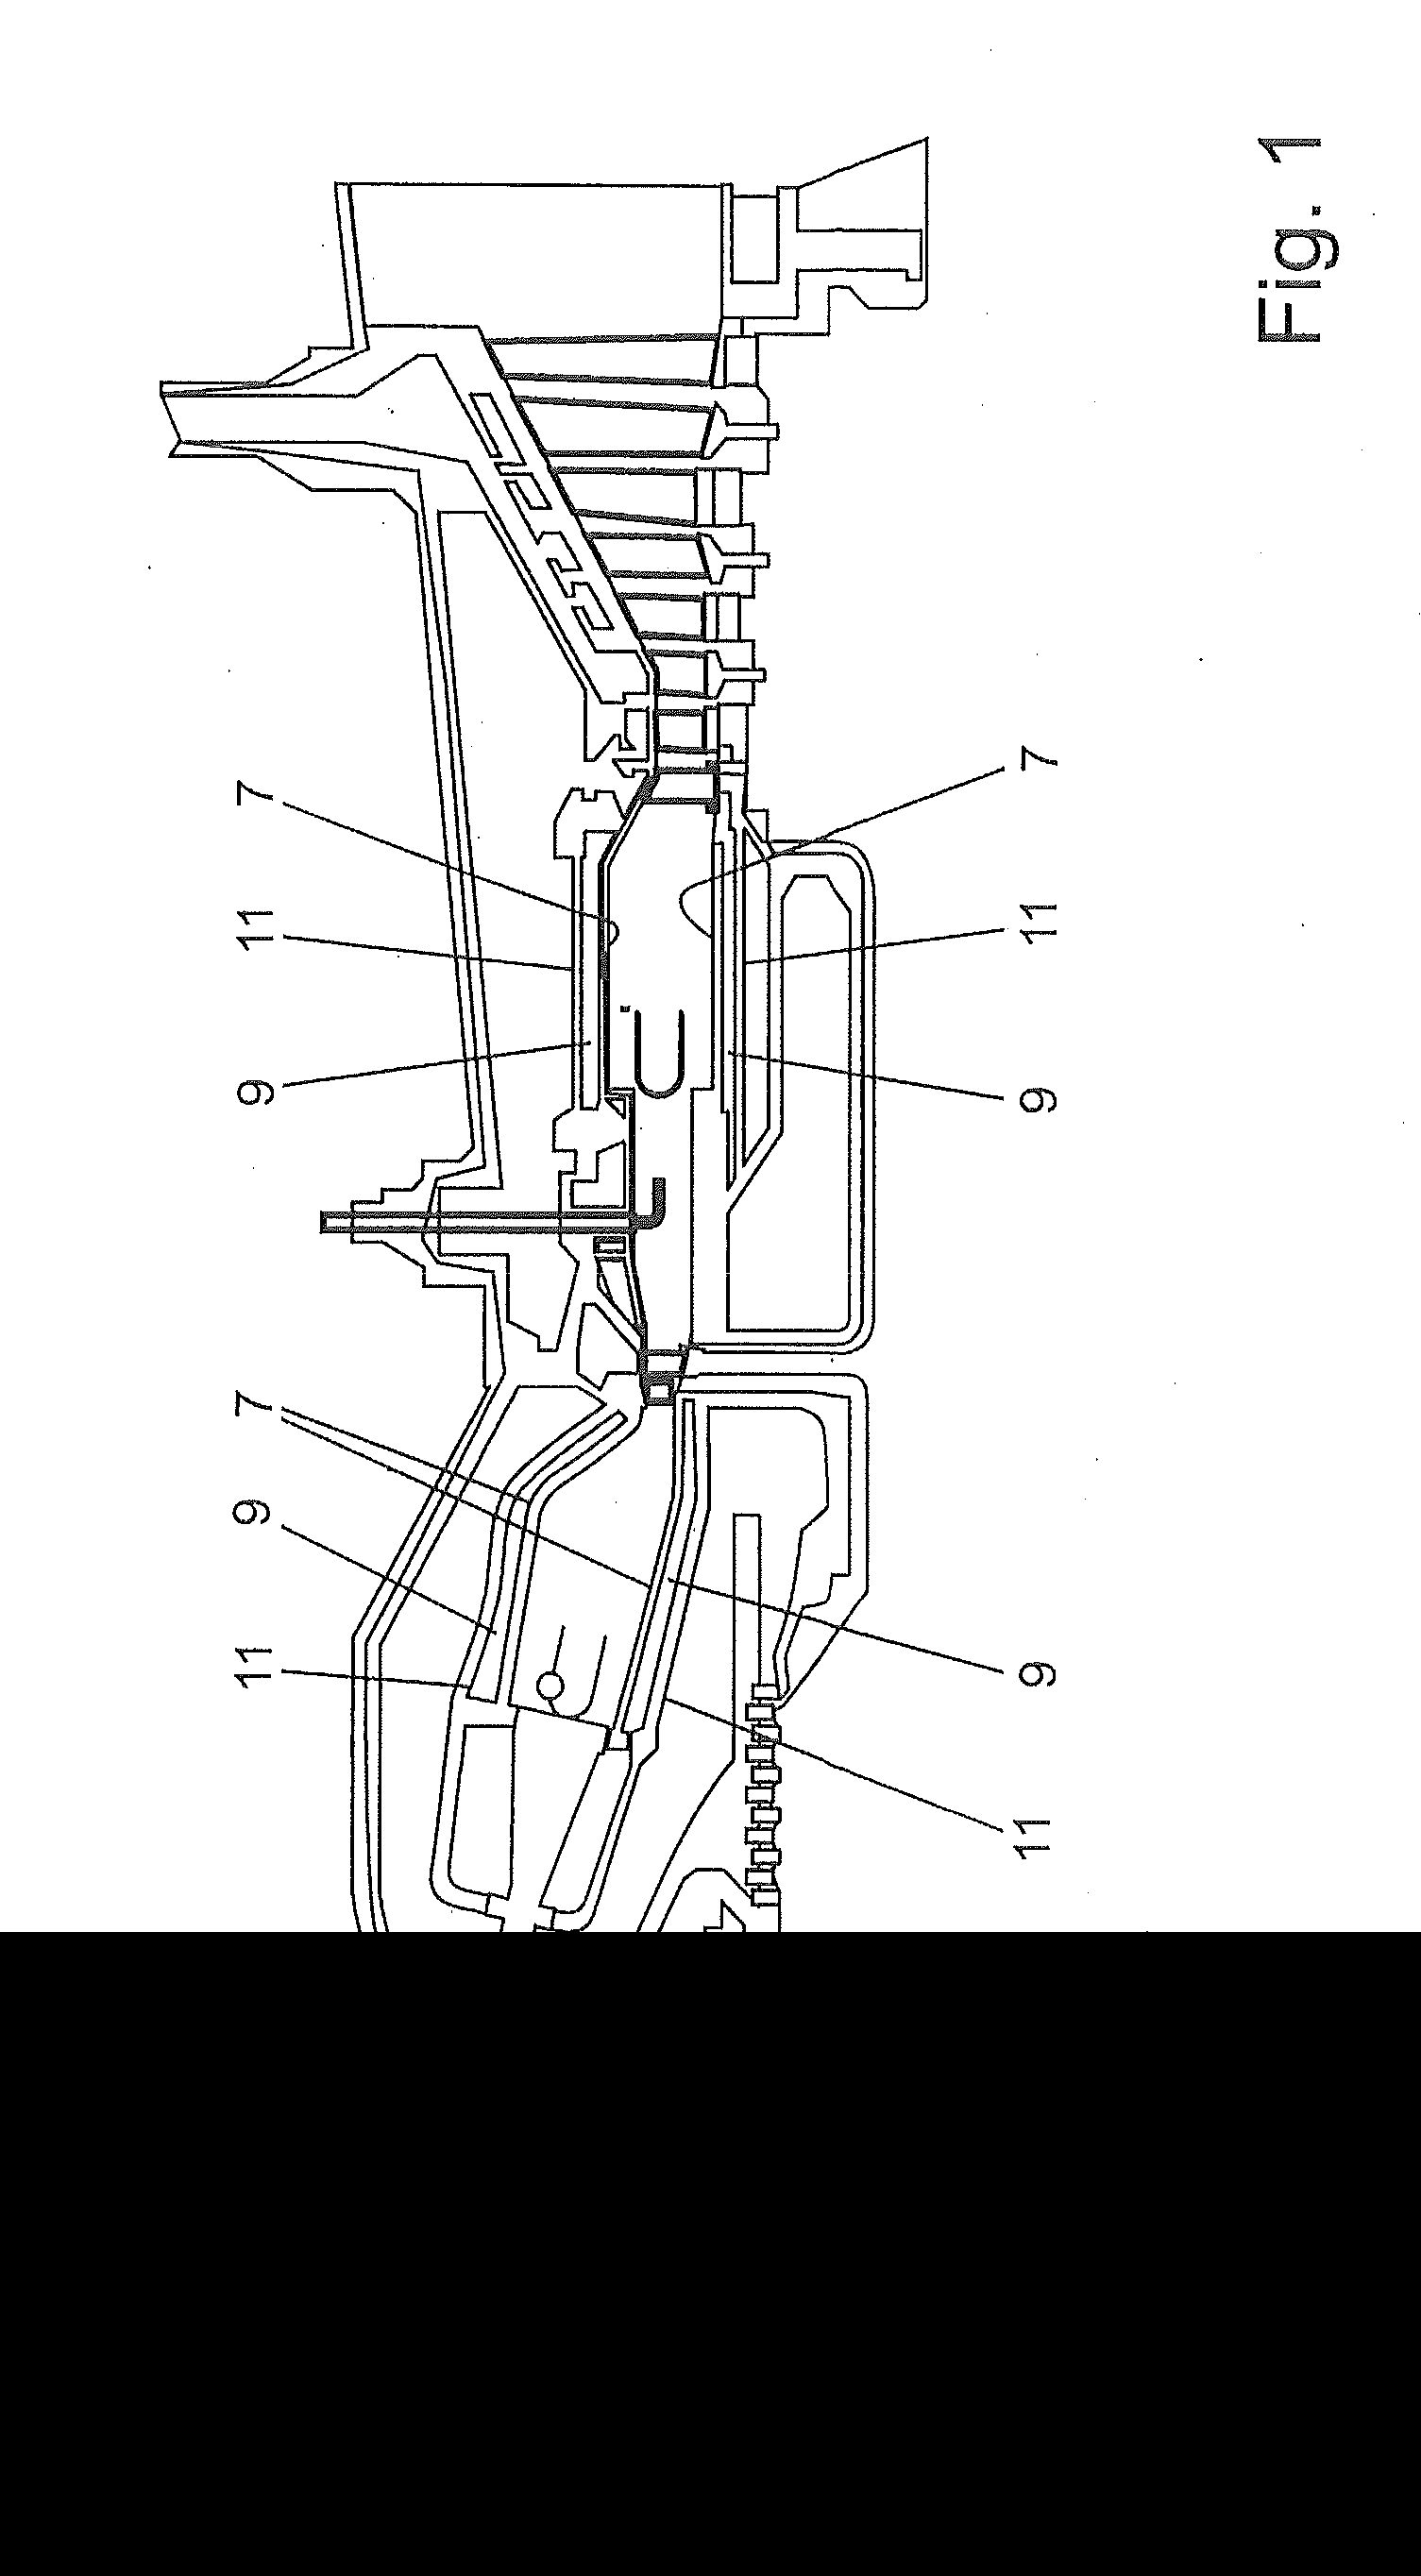 Patent US bustor of a gas turbine with pressure